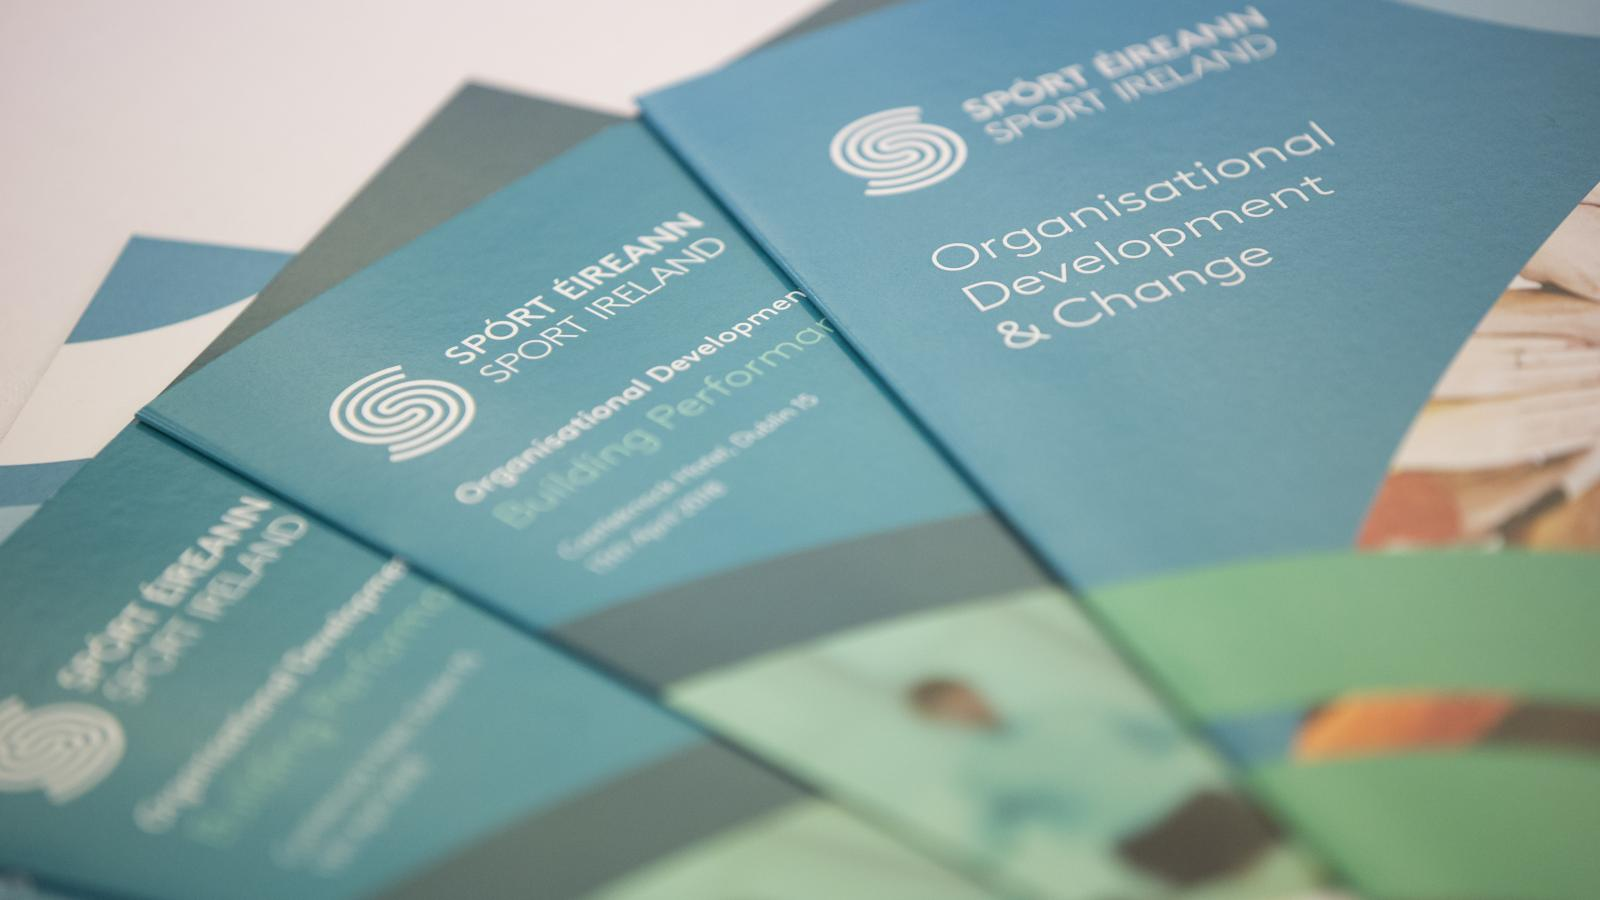 Organisational Development and Change booklet